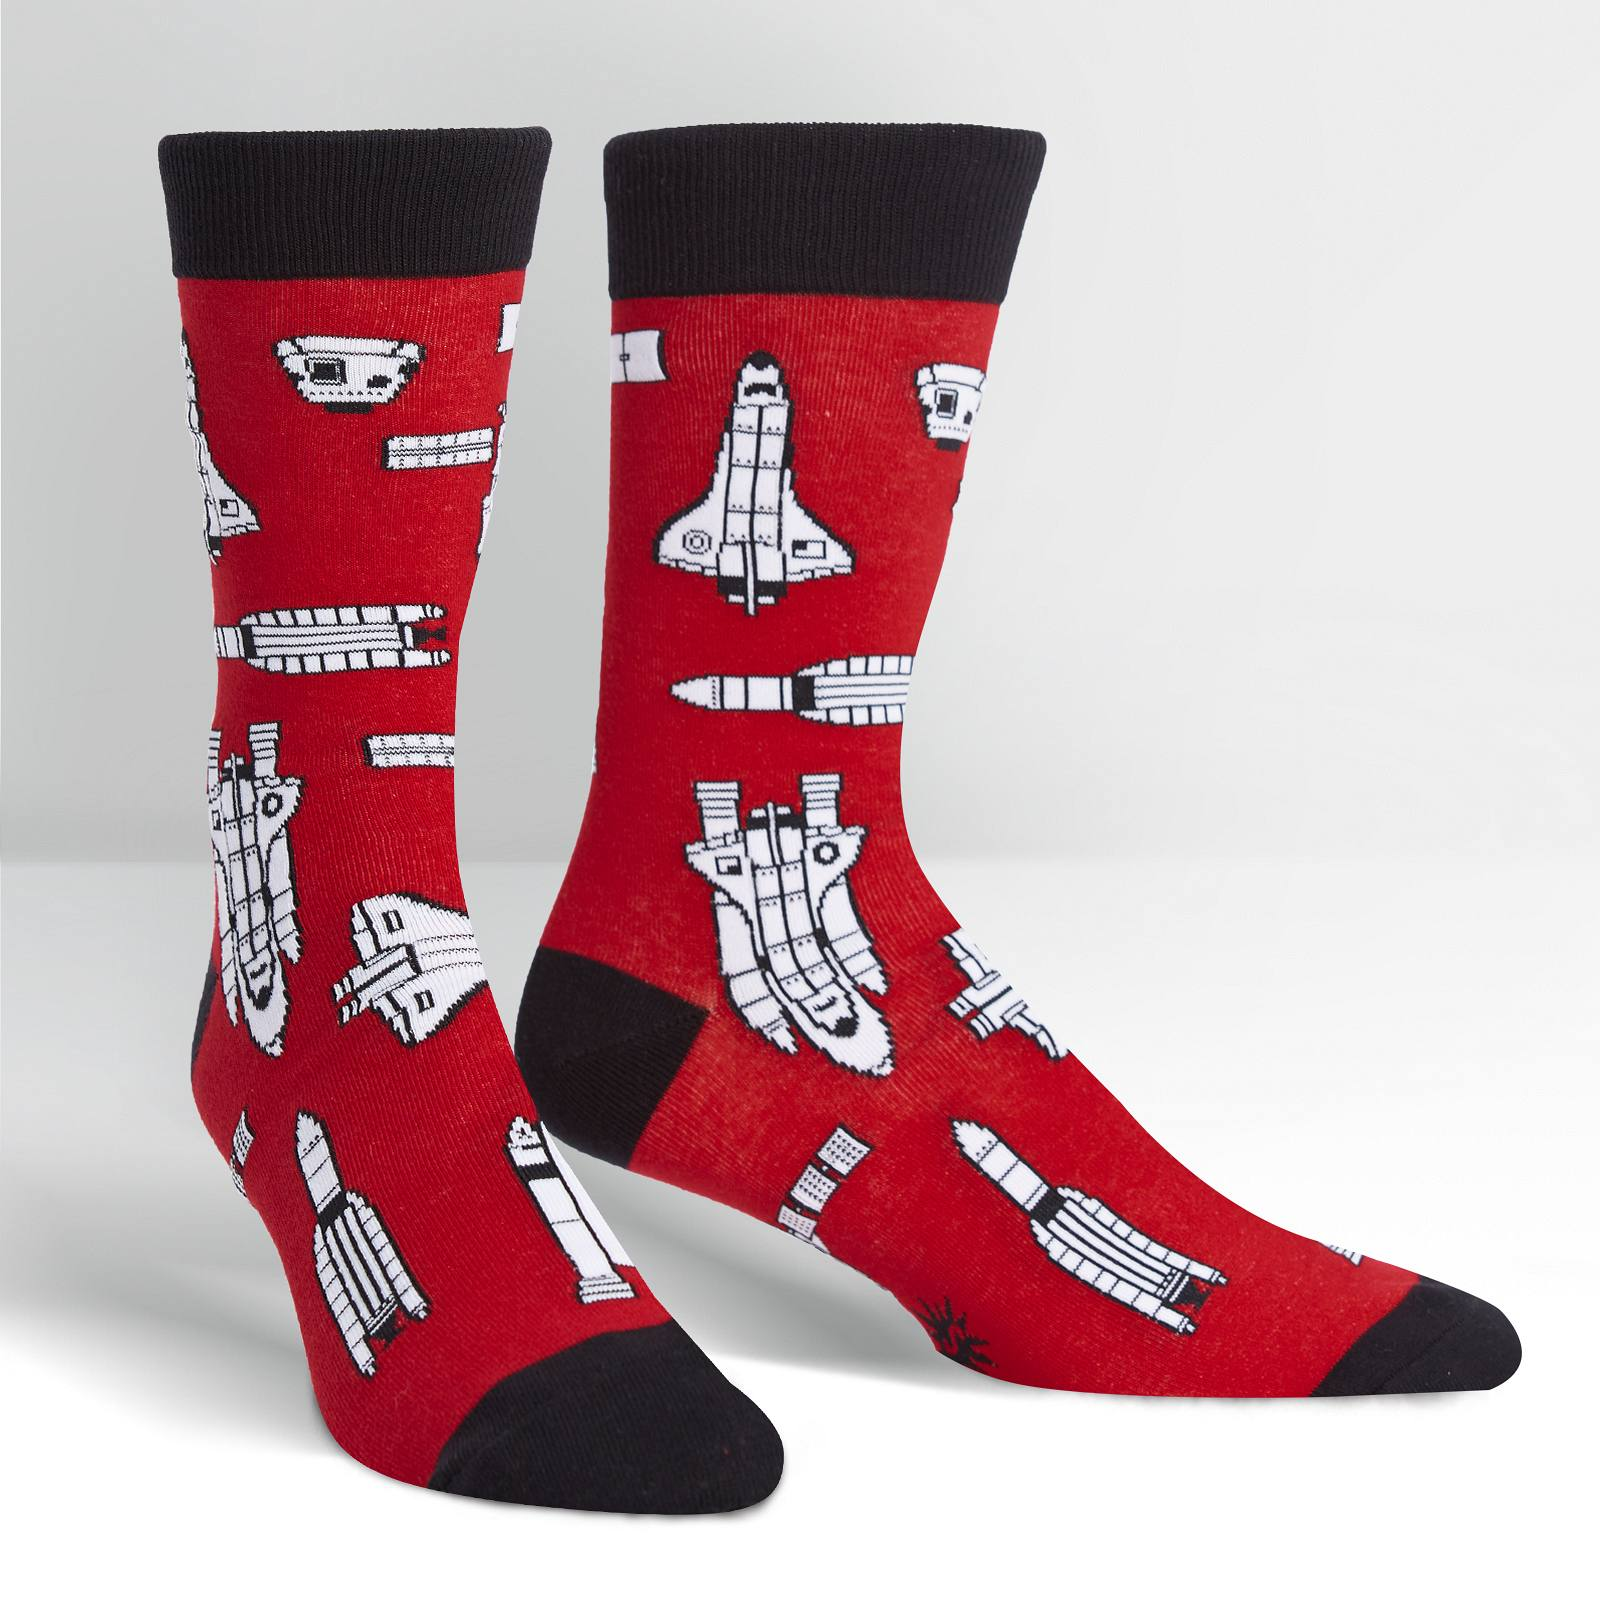 Calcetines-spacecraft-sock-it-to-me-the-socks-closet